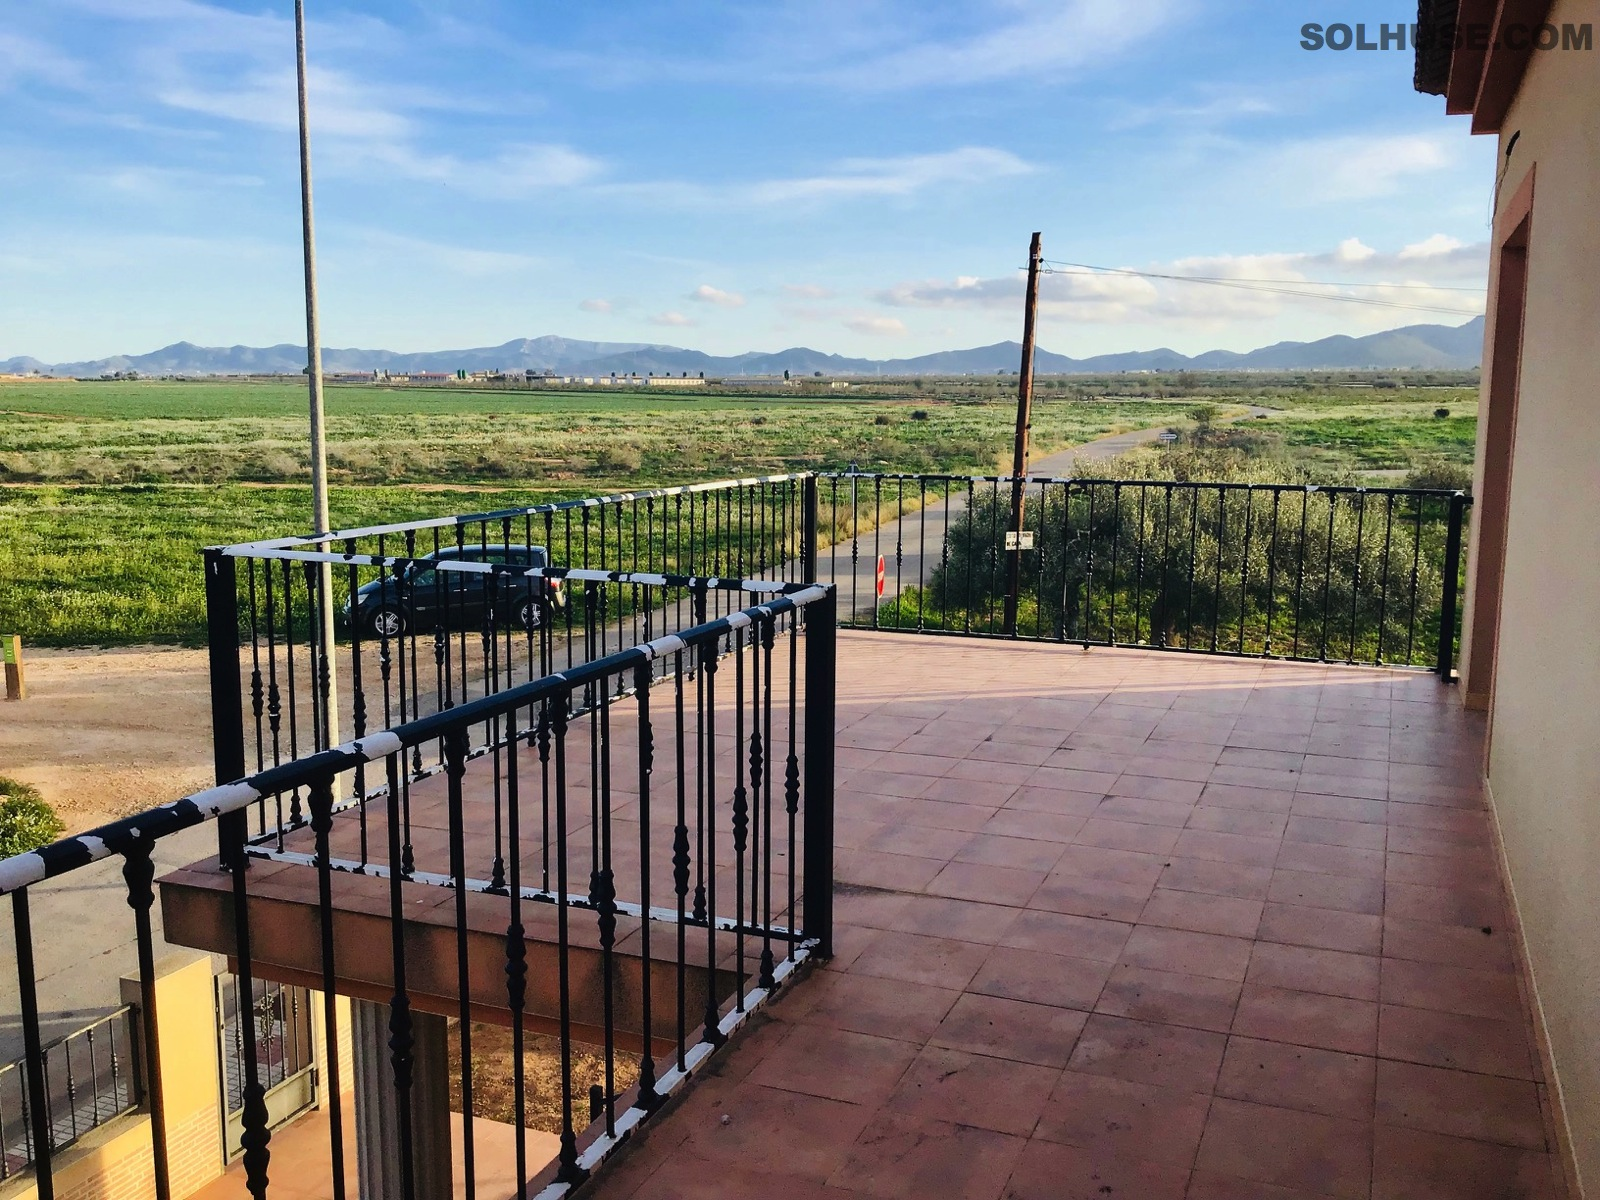 NEW SEMI-DETACHED VILLA, MOUNTAIN VIEWS & ROOM FOR A POOL